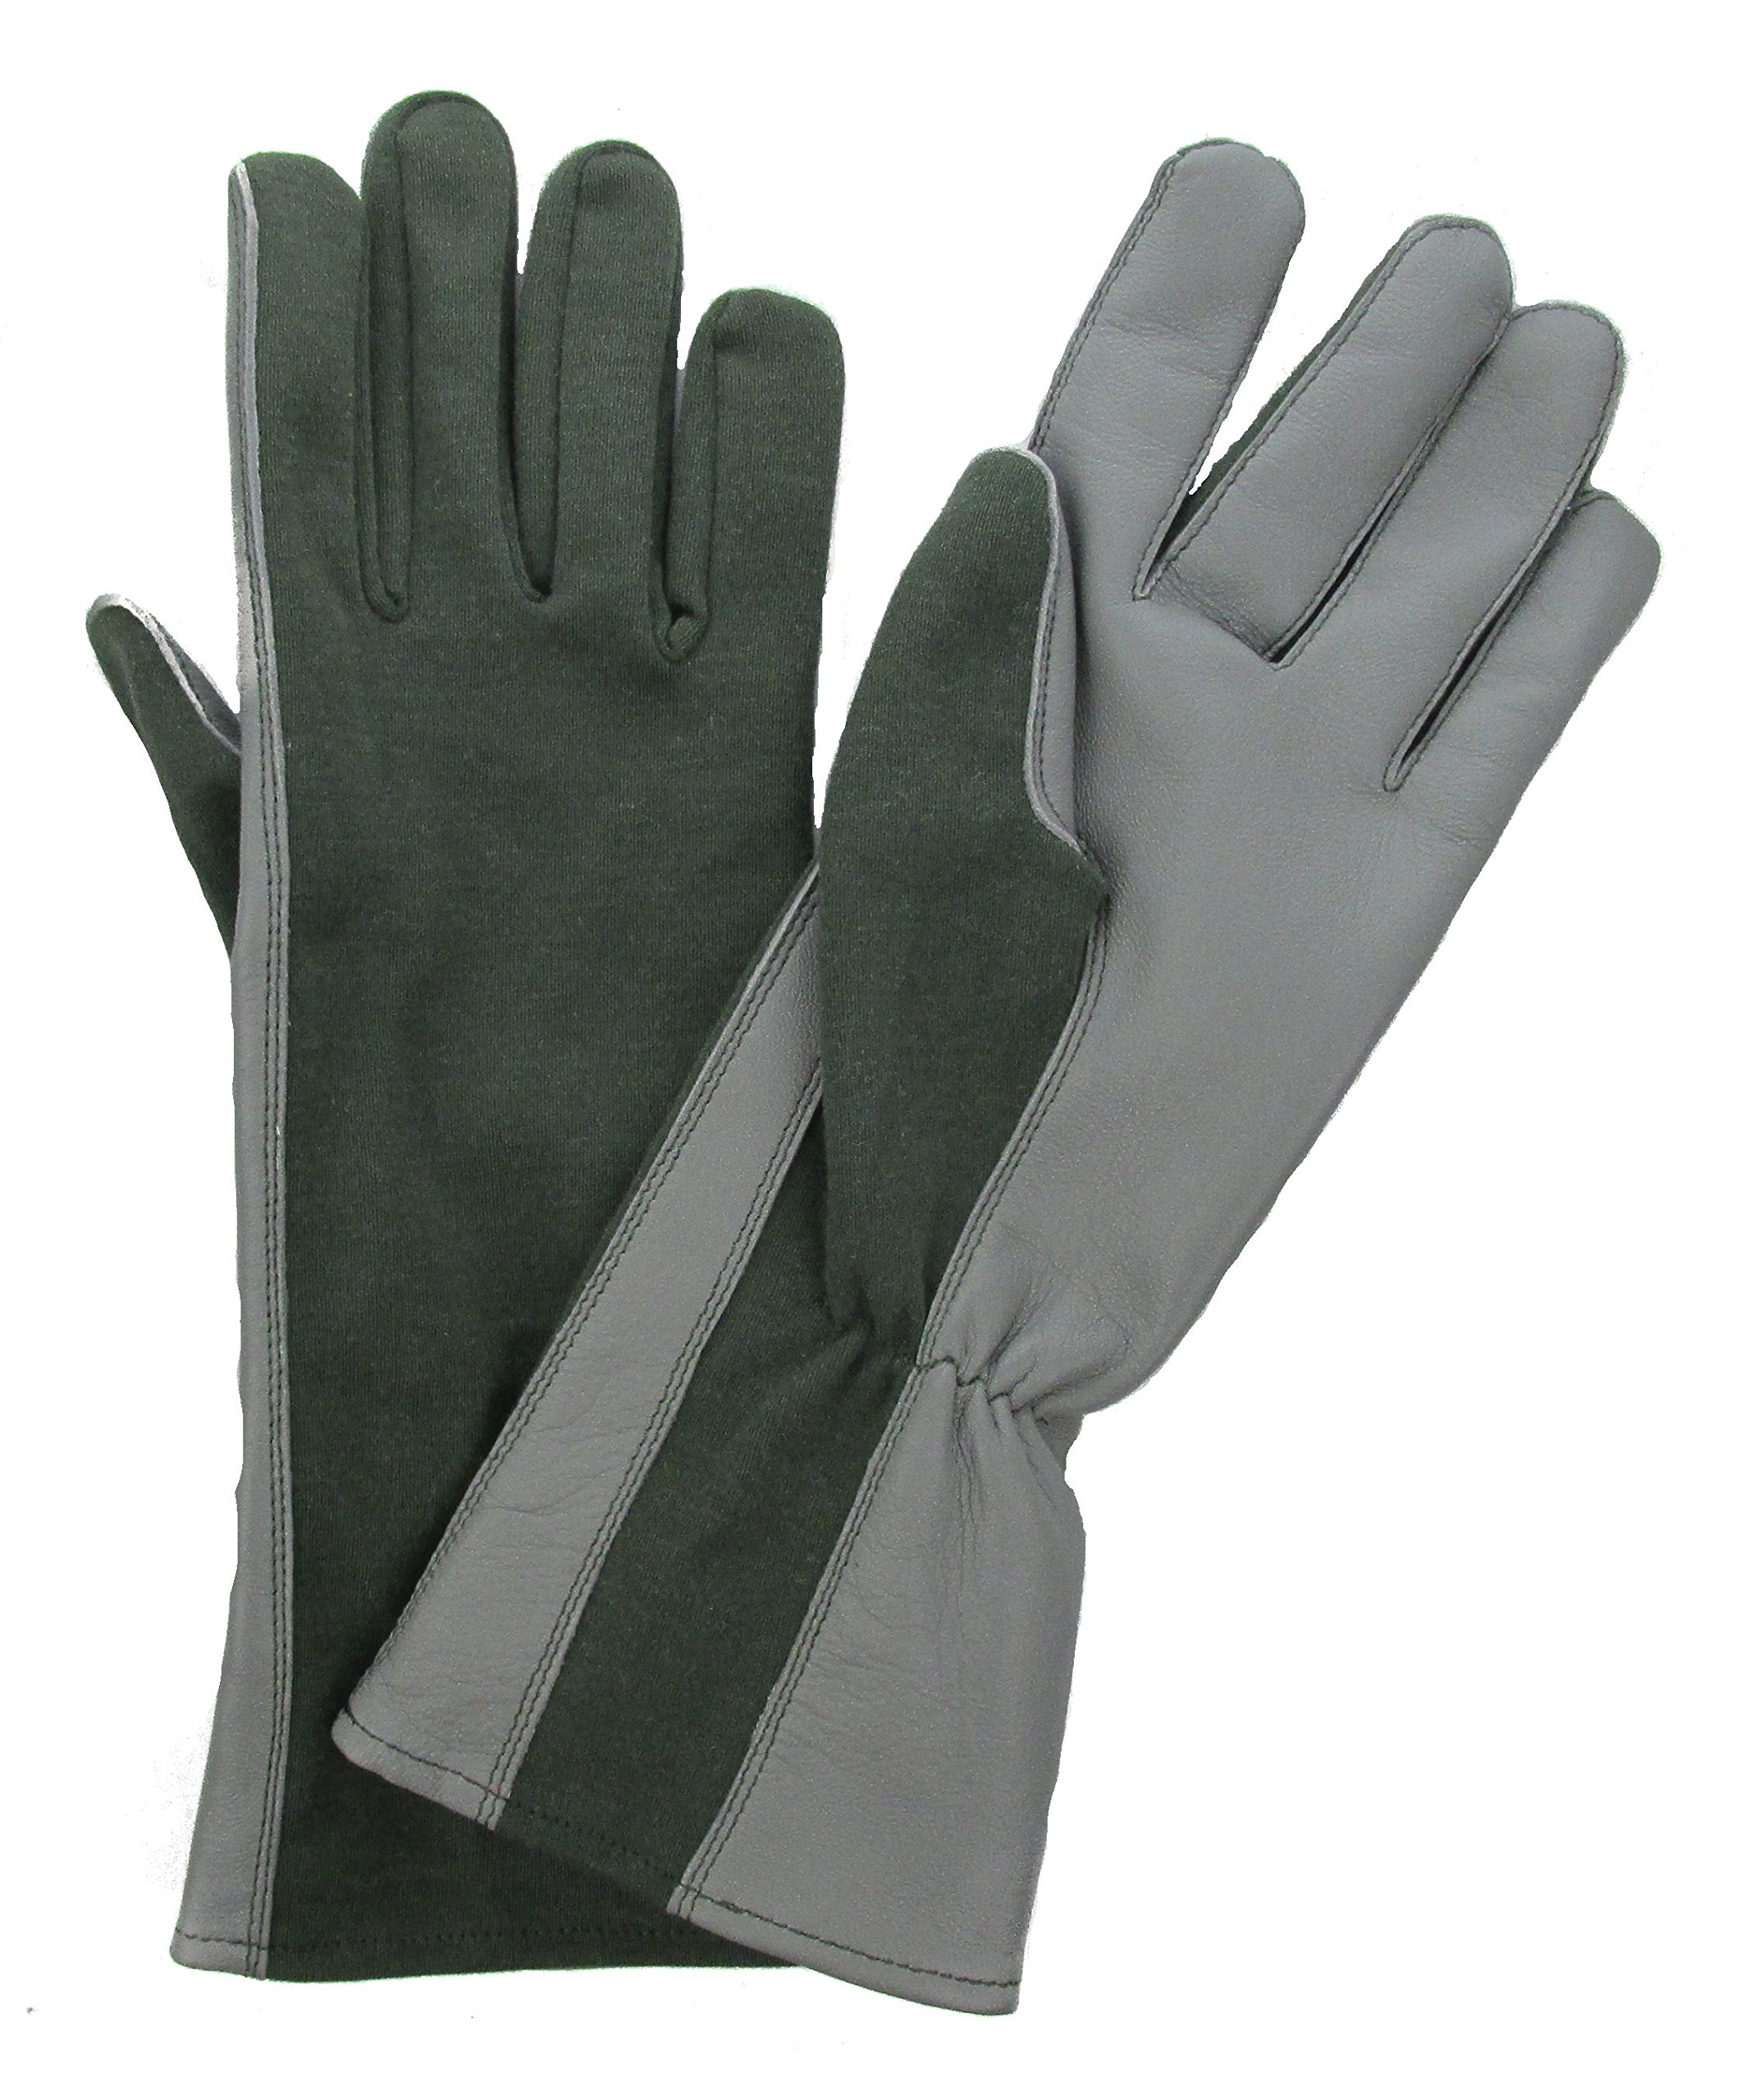 Military Uniform Supply Nomex Flight Gloves SAGE GREEN - Flyers Glove (Small (8)) by Military Uniform Supply